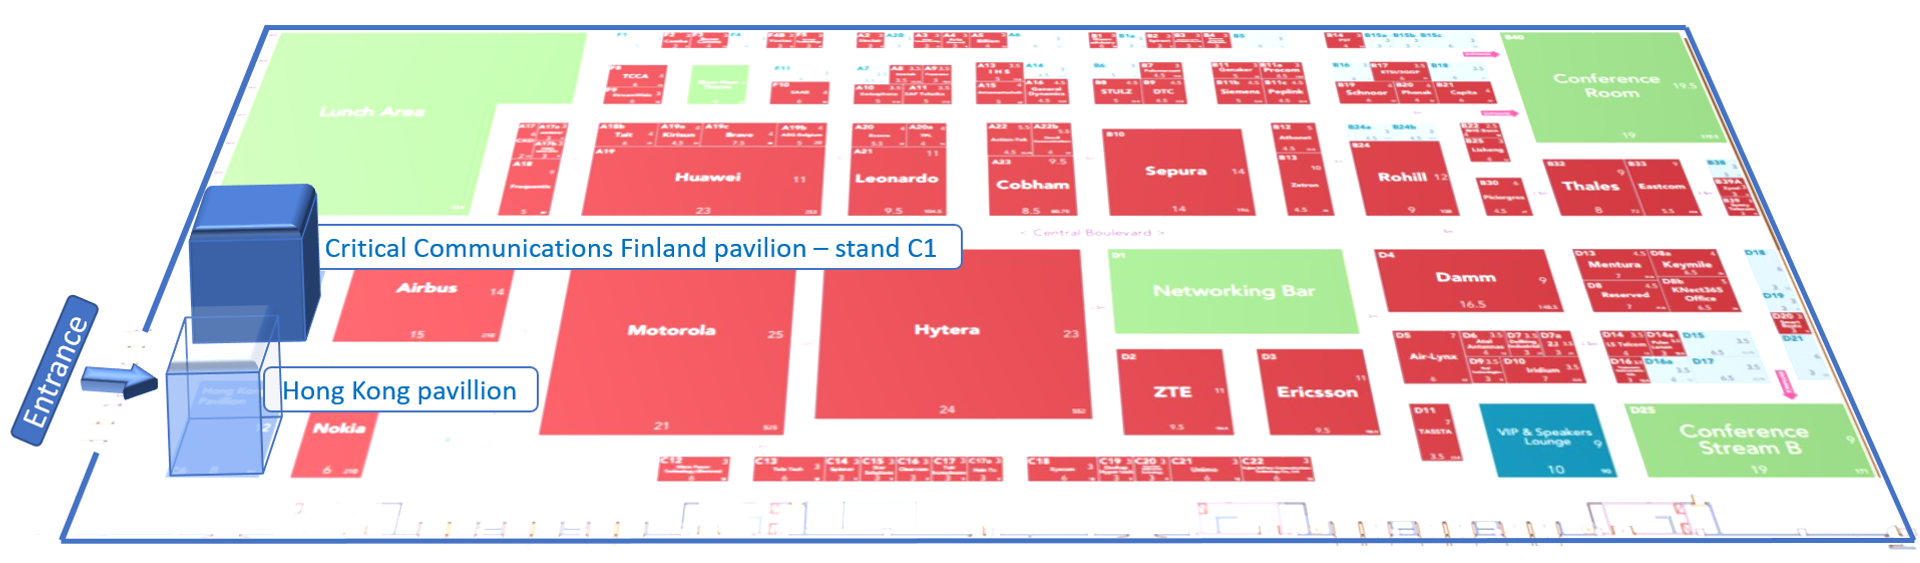 Critical Communications Finland pavilion in CCW2017 is located at the entrance on stand C1